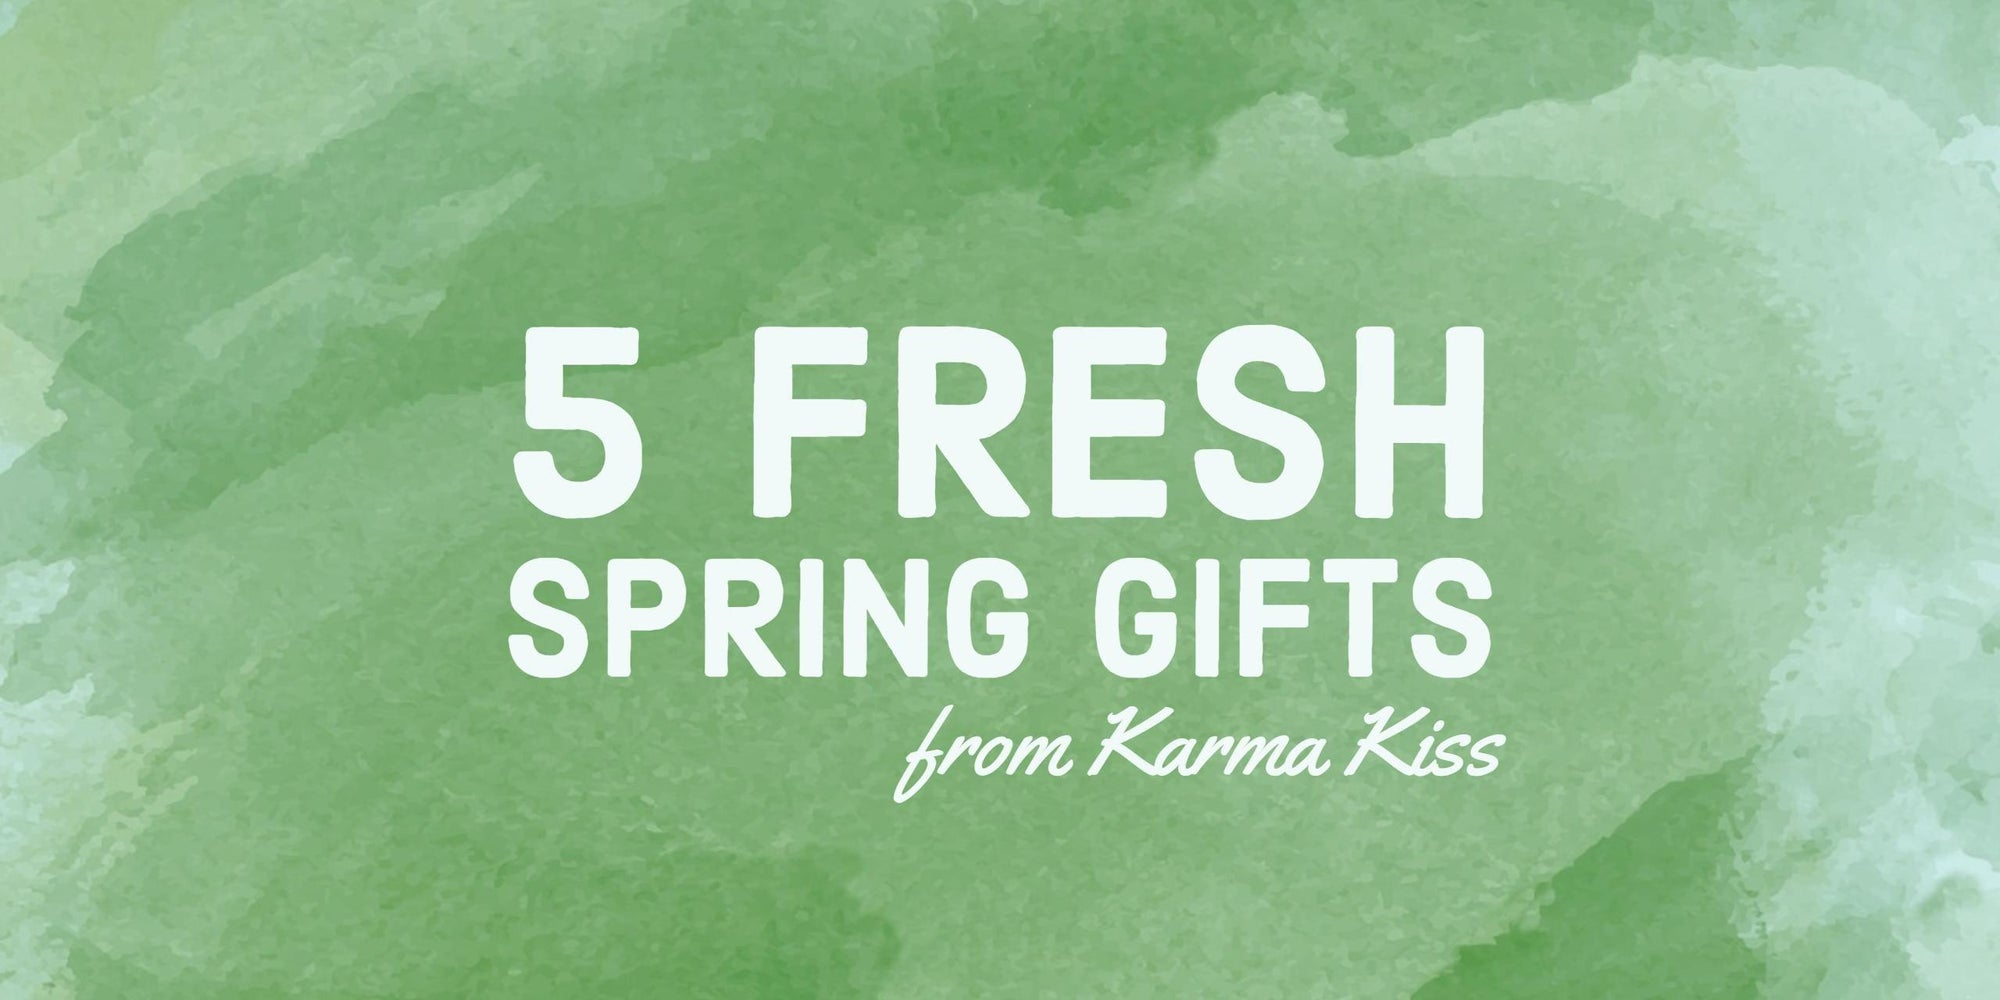 The Best New Gifts from Karma Kiss!